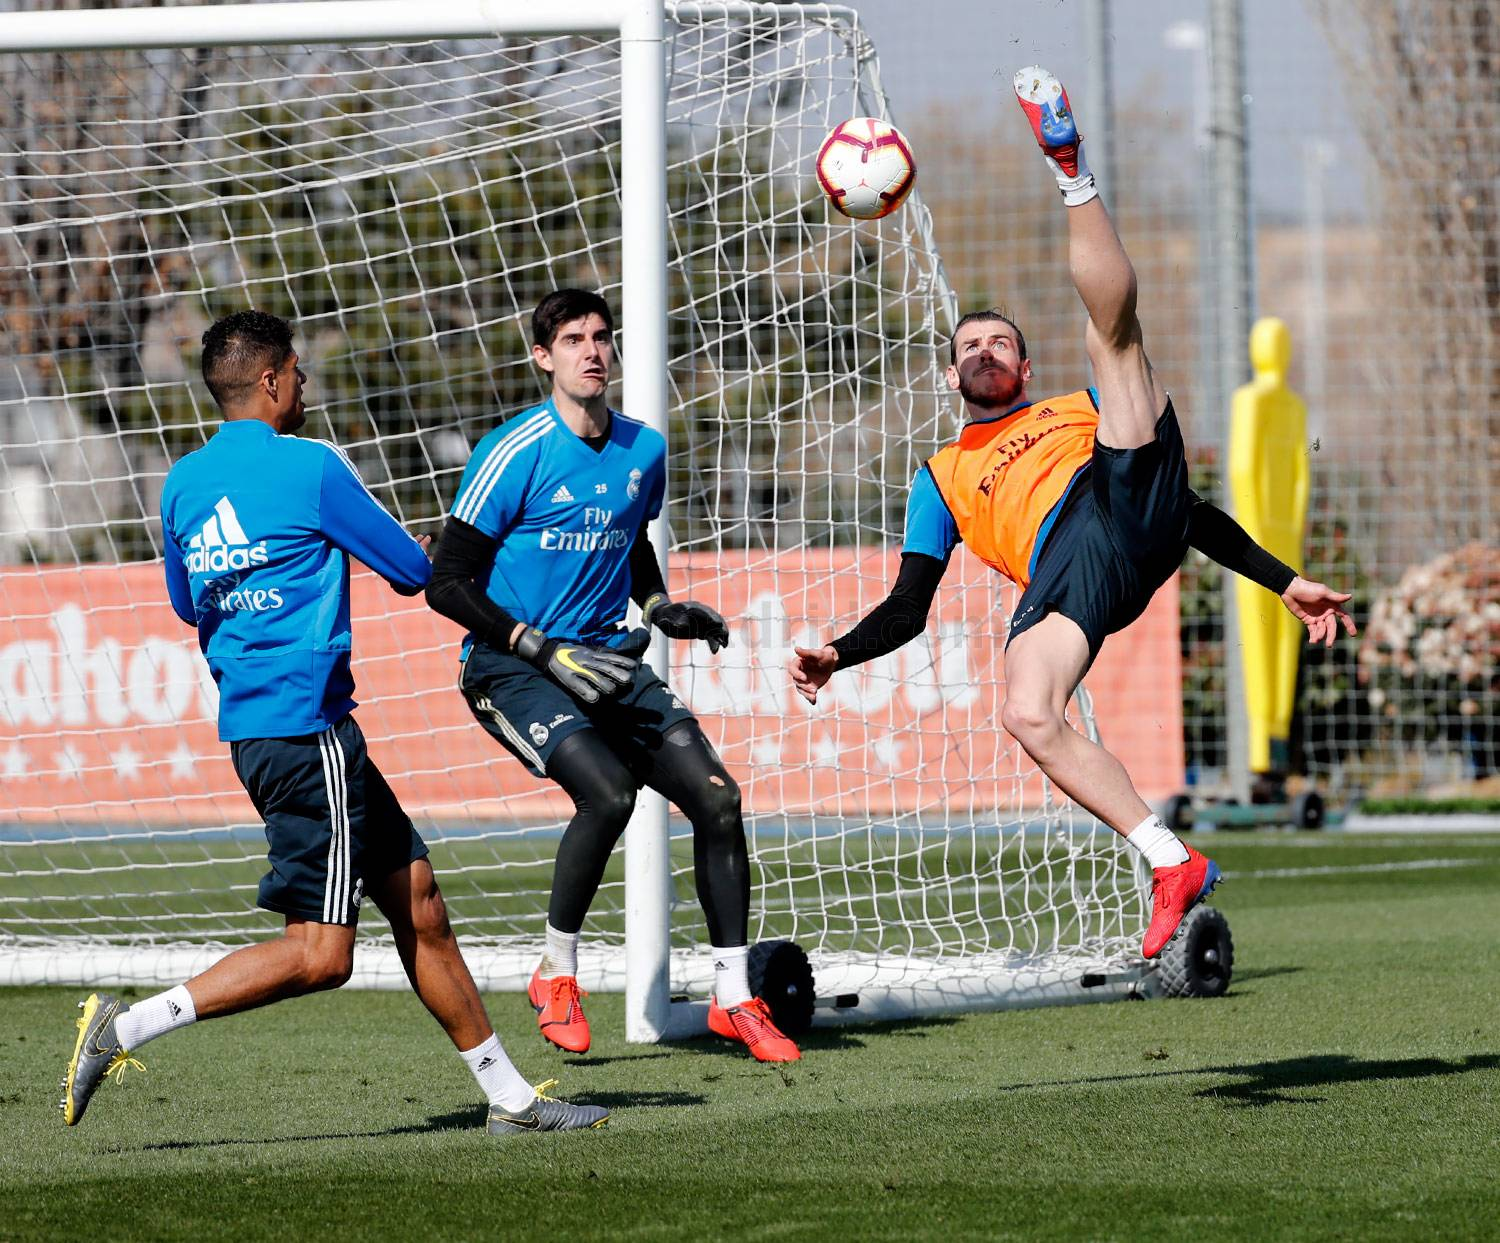 Real Madrid - Entrenamiento del Real Madrid - 21-02-2019